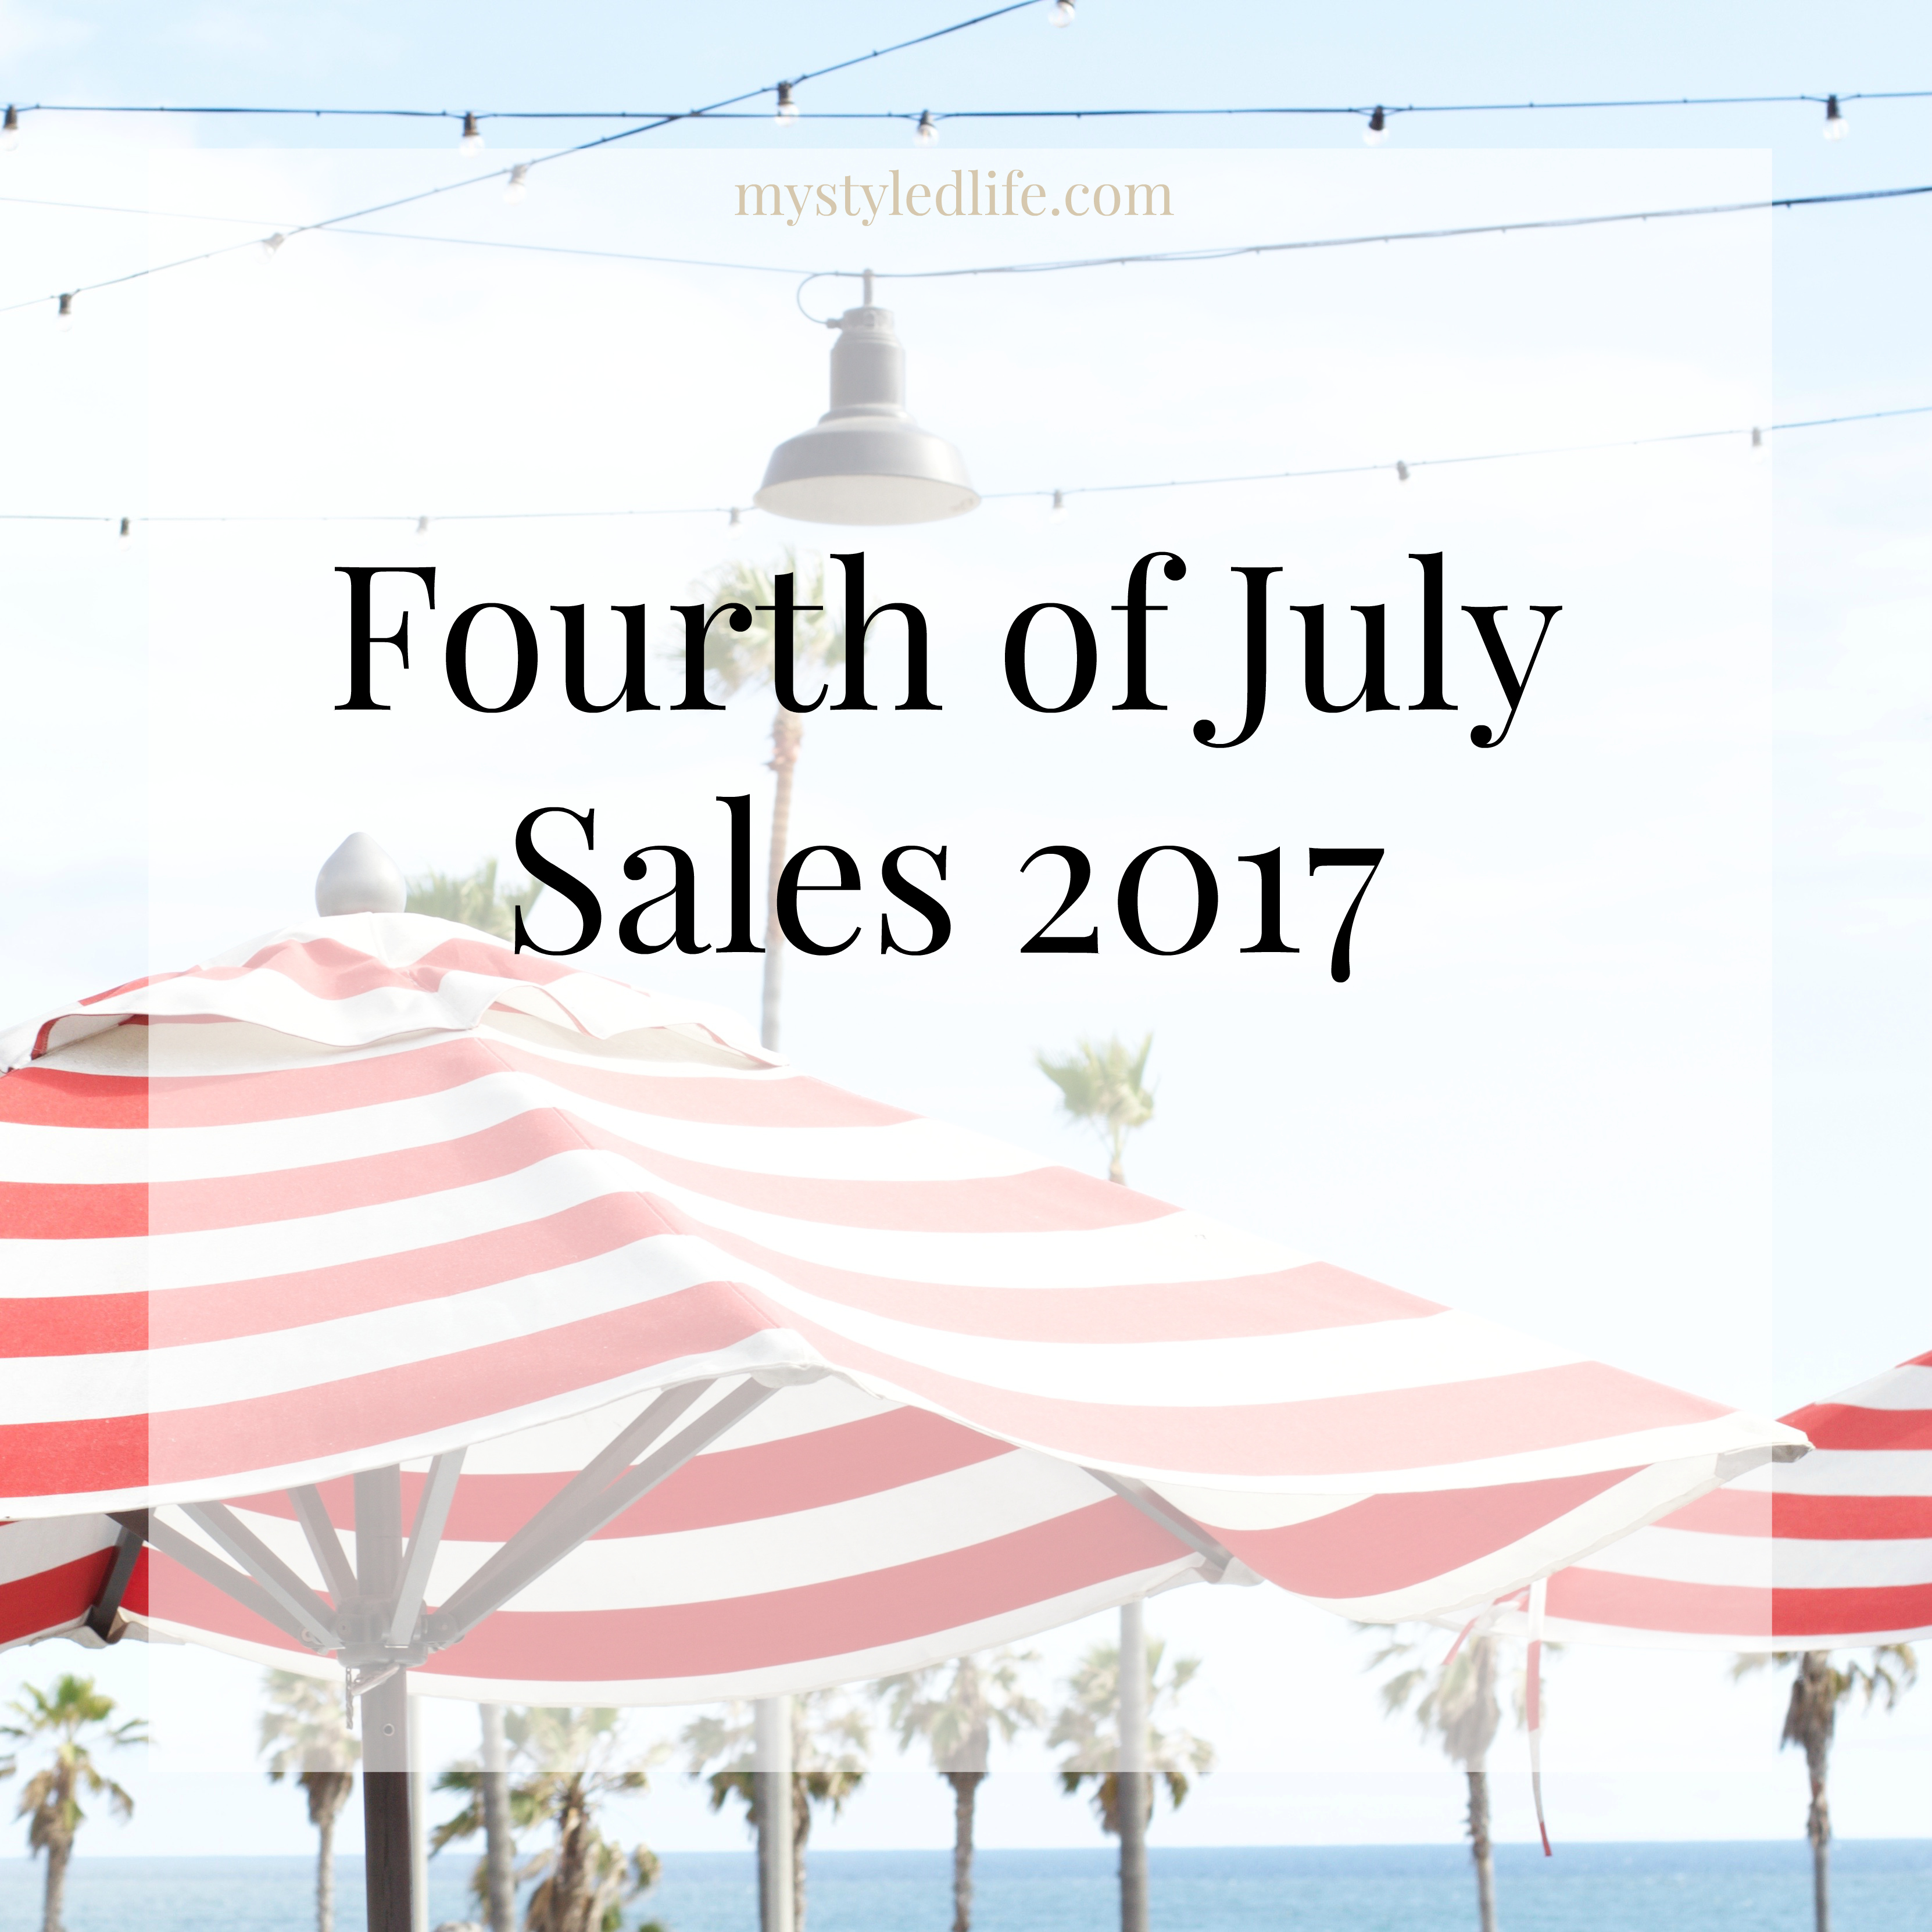 4th of July sales 2017